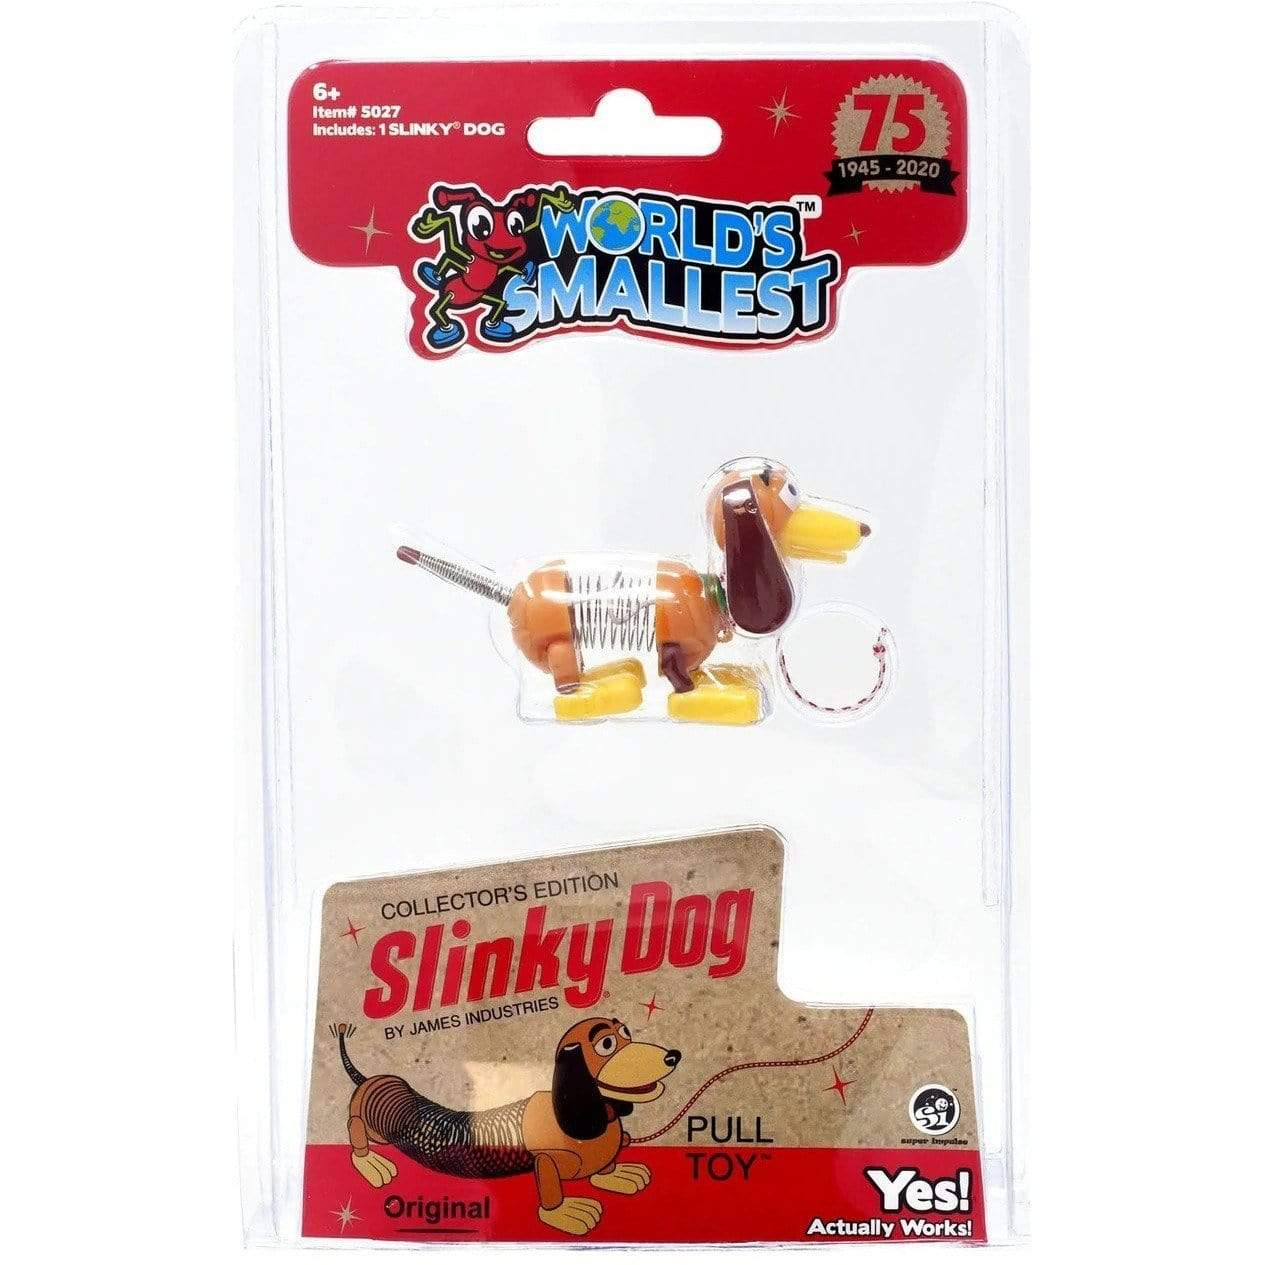 World's Smallest: Slinky Dog Super Impulse Puzzles/Playthings